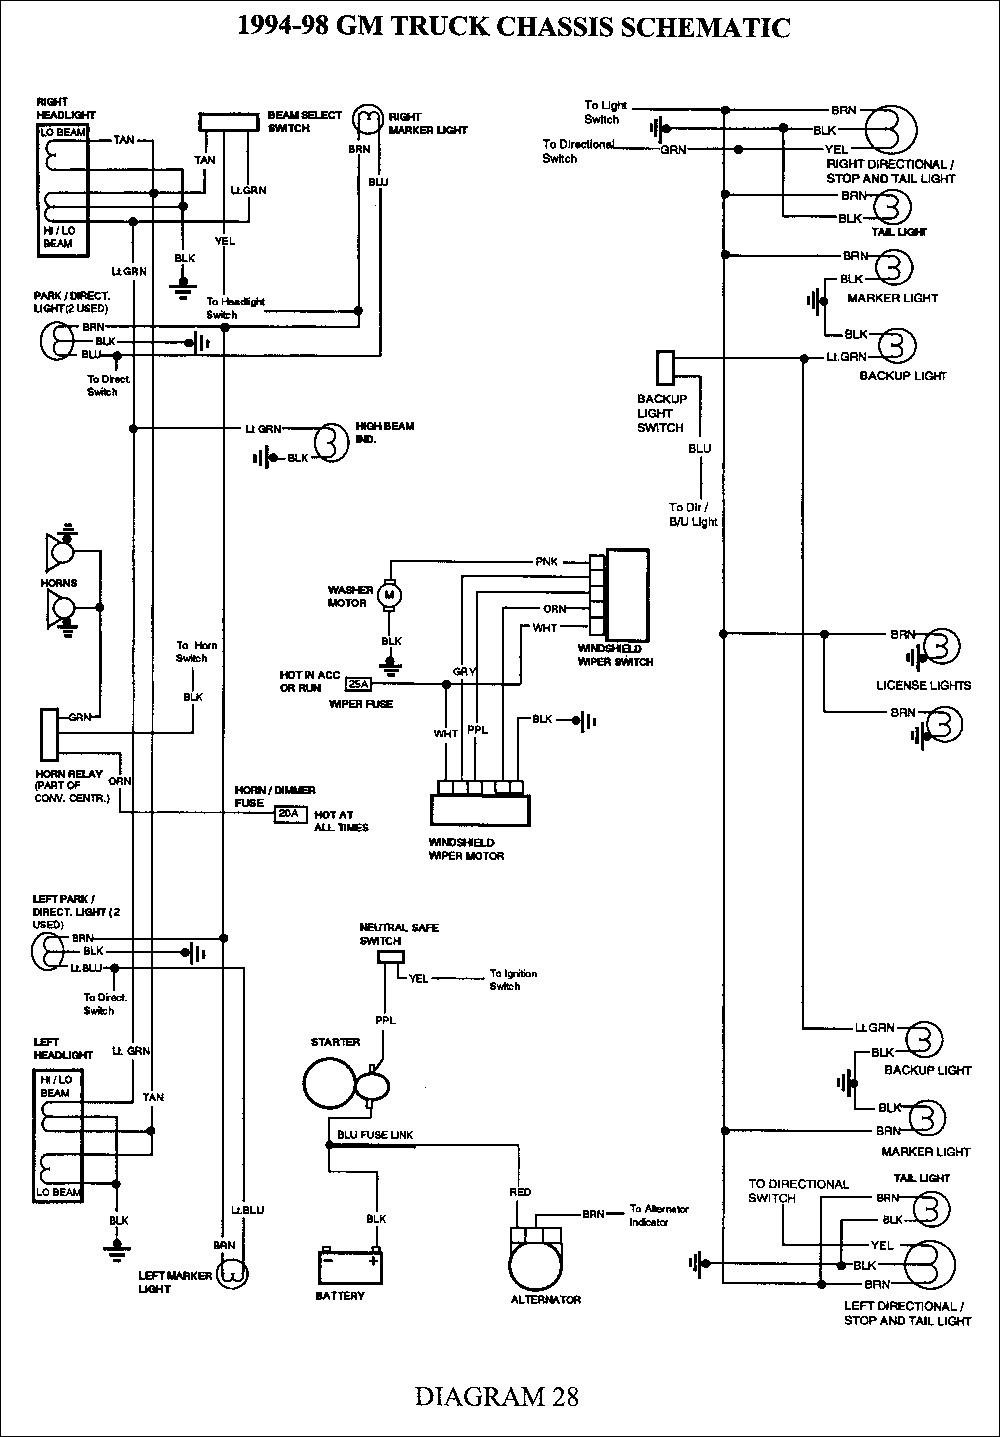 peterbilt starter wiring diagram schematic wiring diagrams u2022 rh detox design co 2003 387 Peterbilt Truck Wiring Schematics peterbilt 379 starter wiring diagram